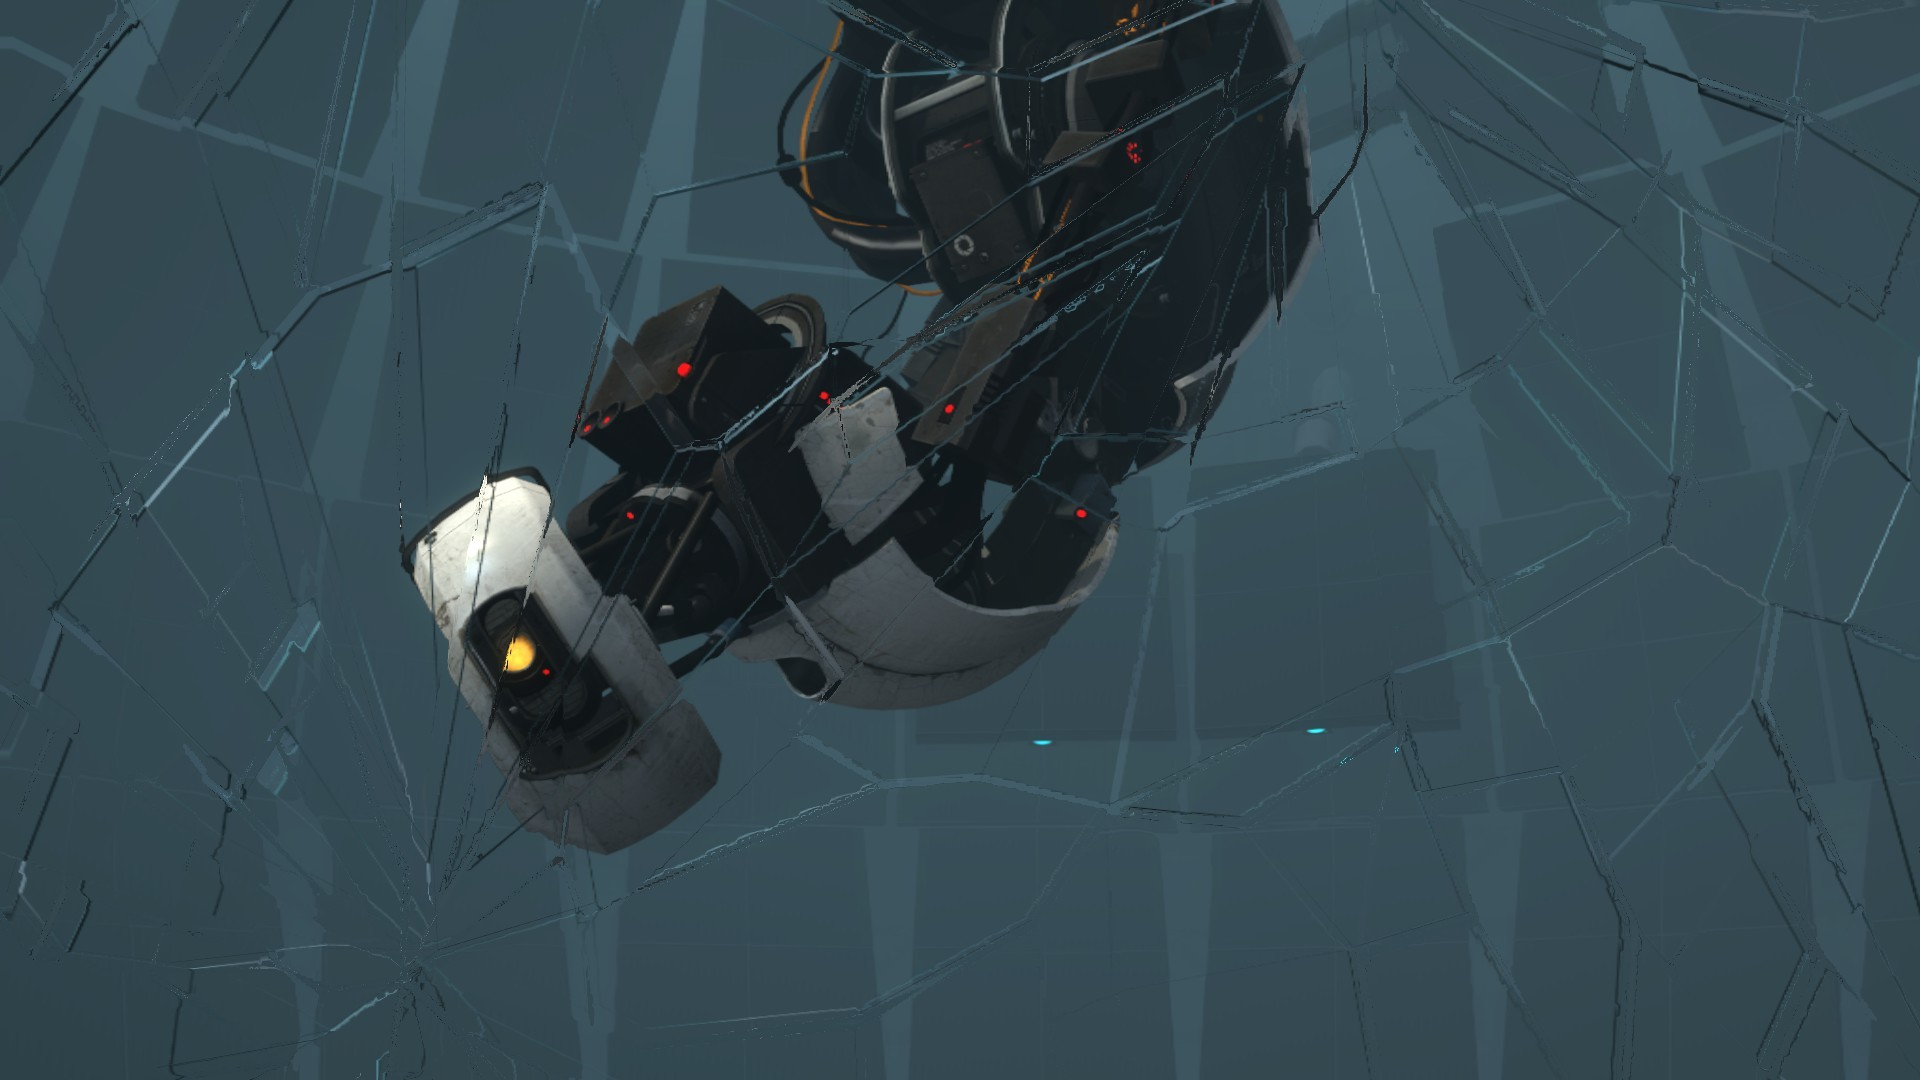 1920x1080 Glados Wallpapers | WallpaperUP